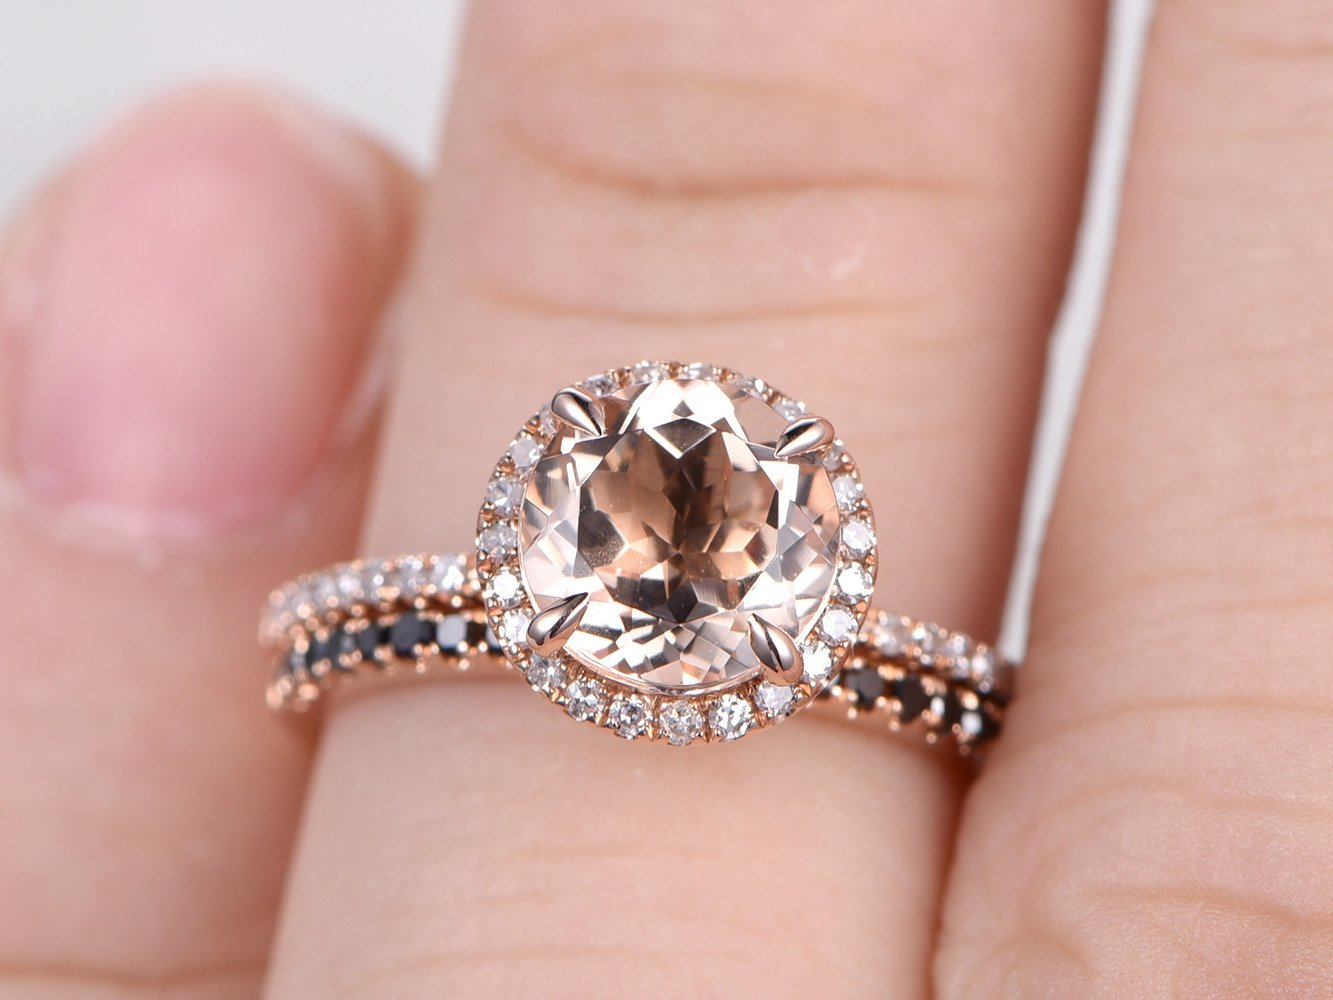 Amazon.com: 7mm Round Cut Natural Peach Pink Morganite Stone Halo ...